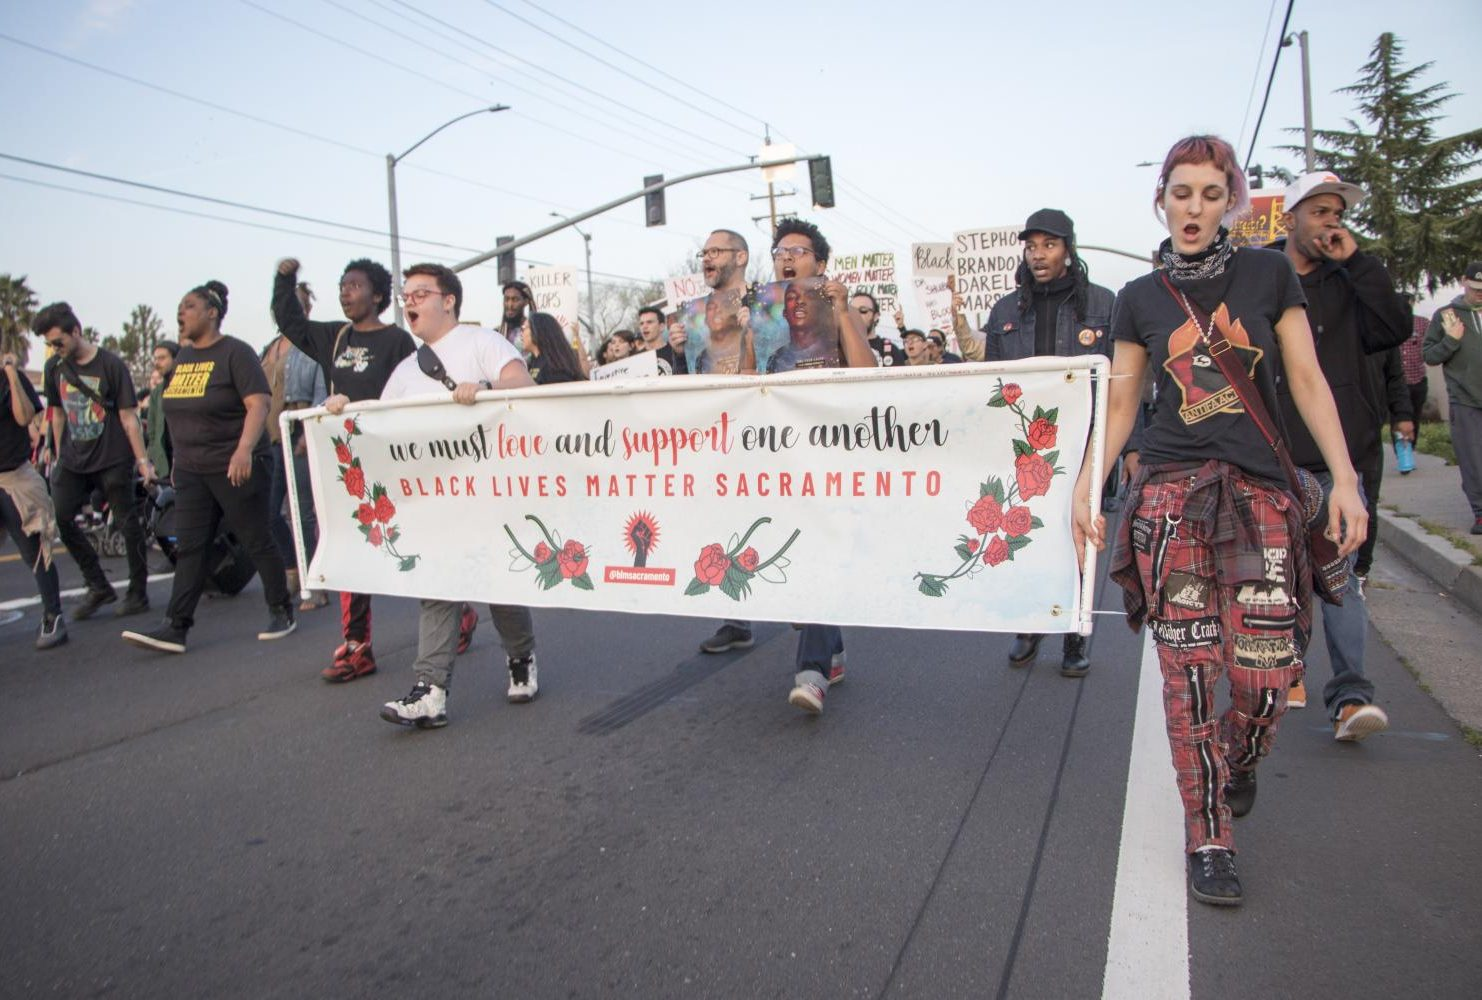 """Demonstrators hold up a sign that reads """"We must love and support one another / Black Lives Matter Sacramento"""" banner during the one year anniversary of Stephon Clark's death in South Sacramento, Calif. on March 18, 2019. (Photo by Ashley Hayes-Stone)"""